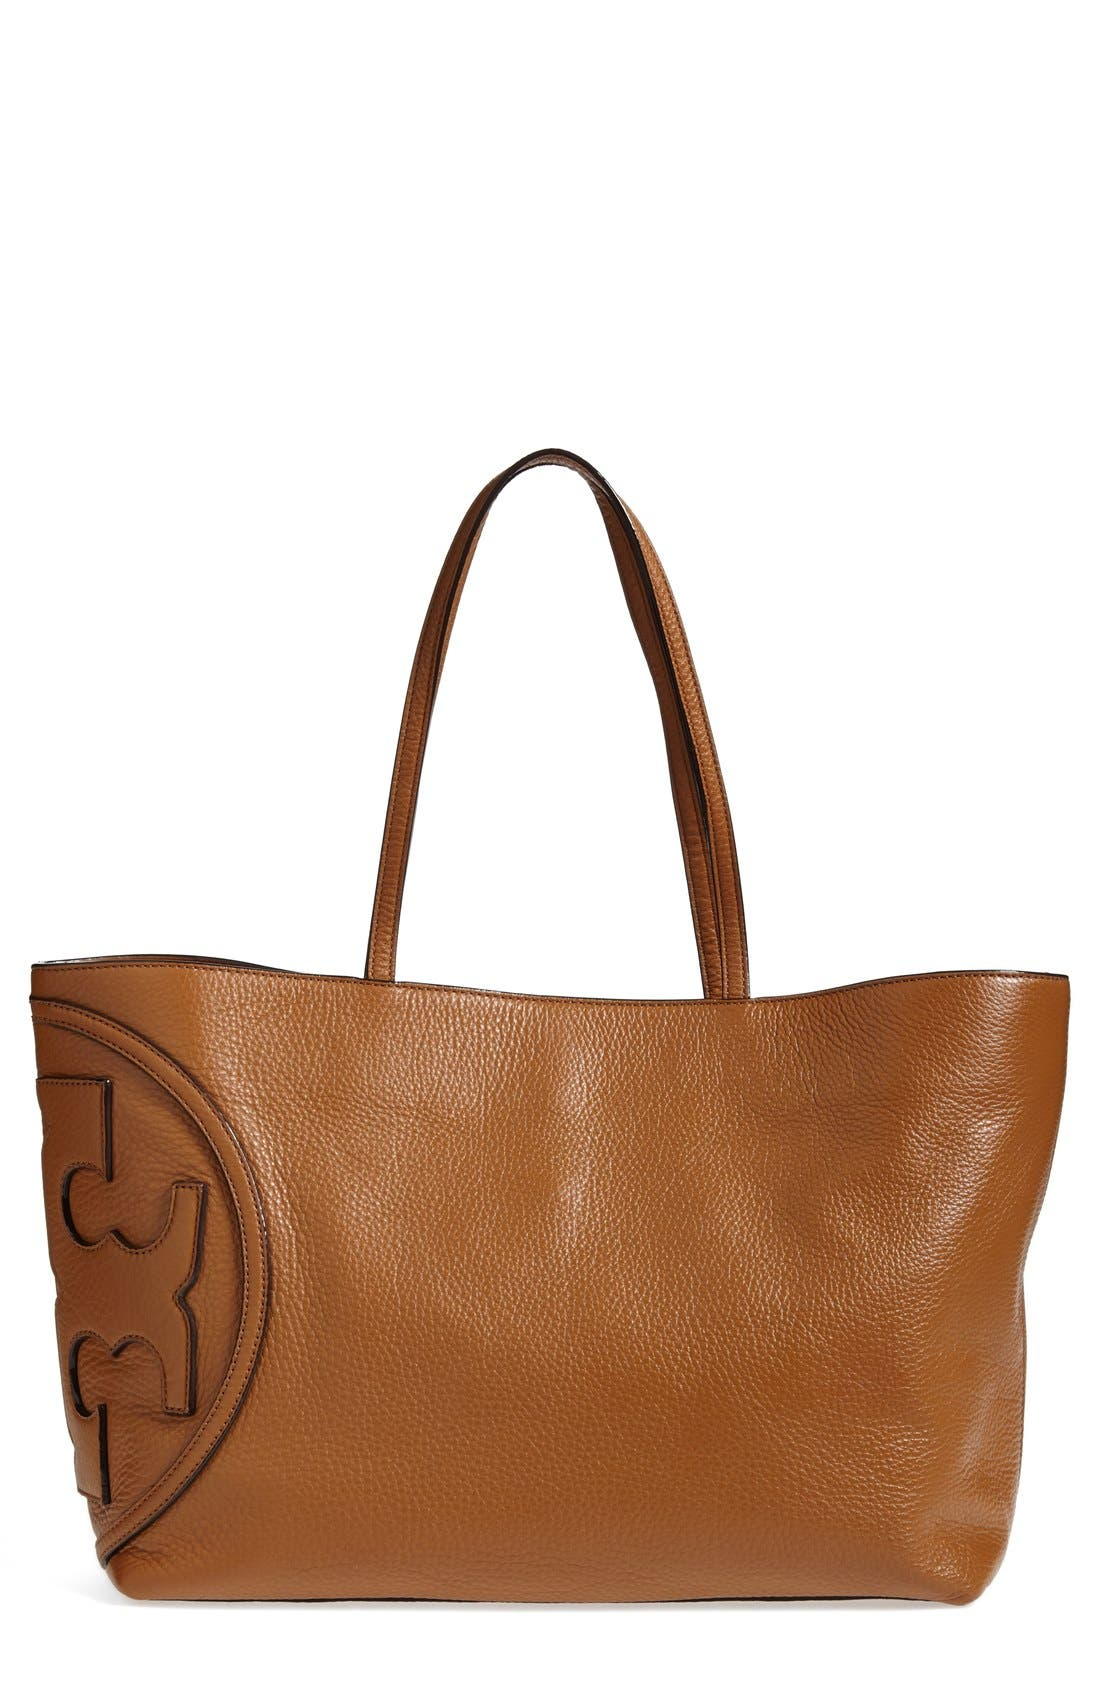 Main Image - Tory Burch 'All T' Leather Tote